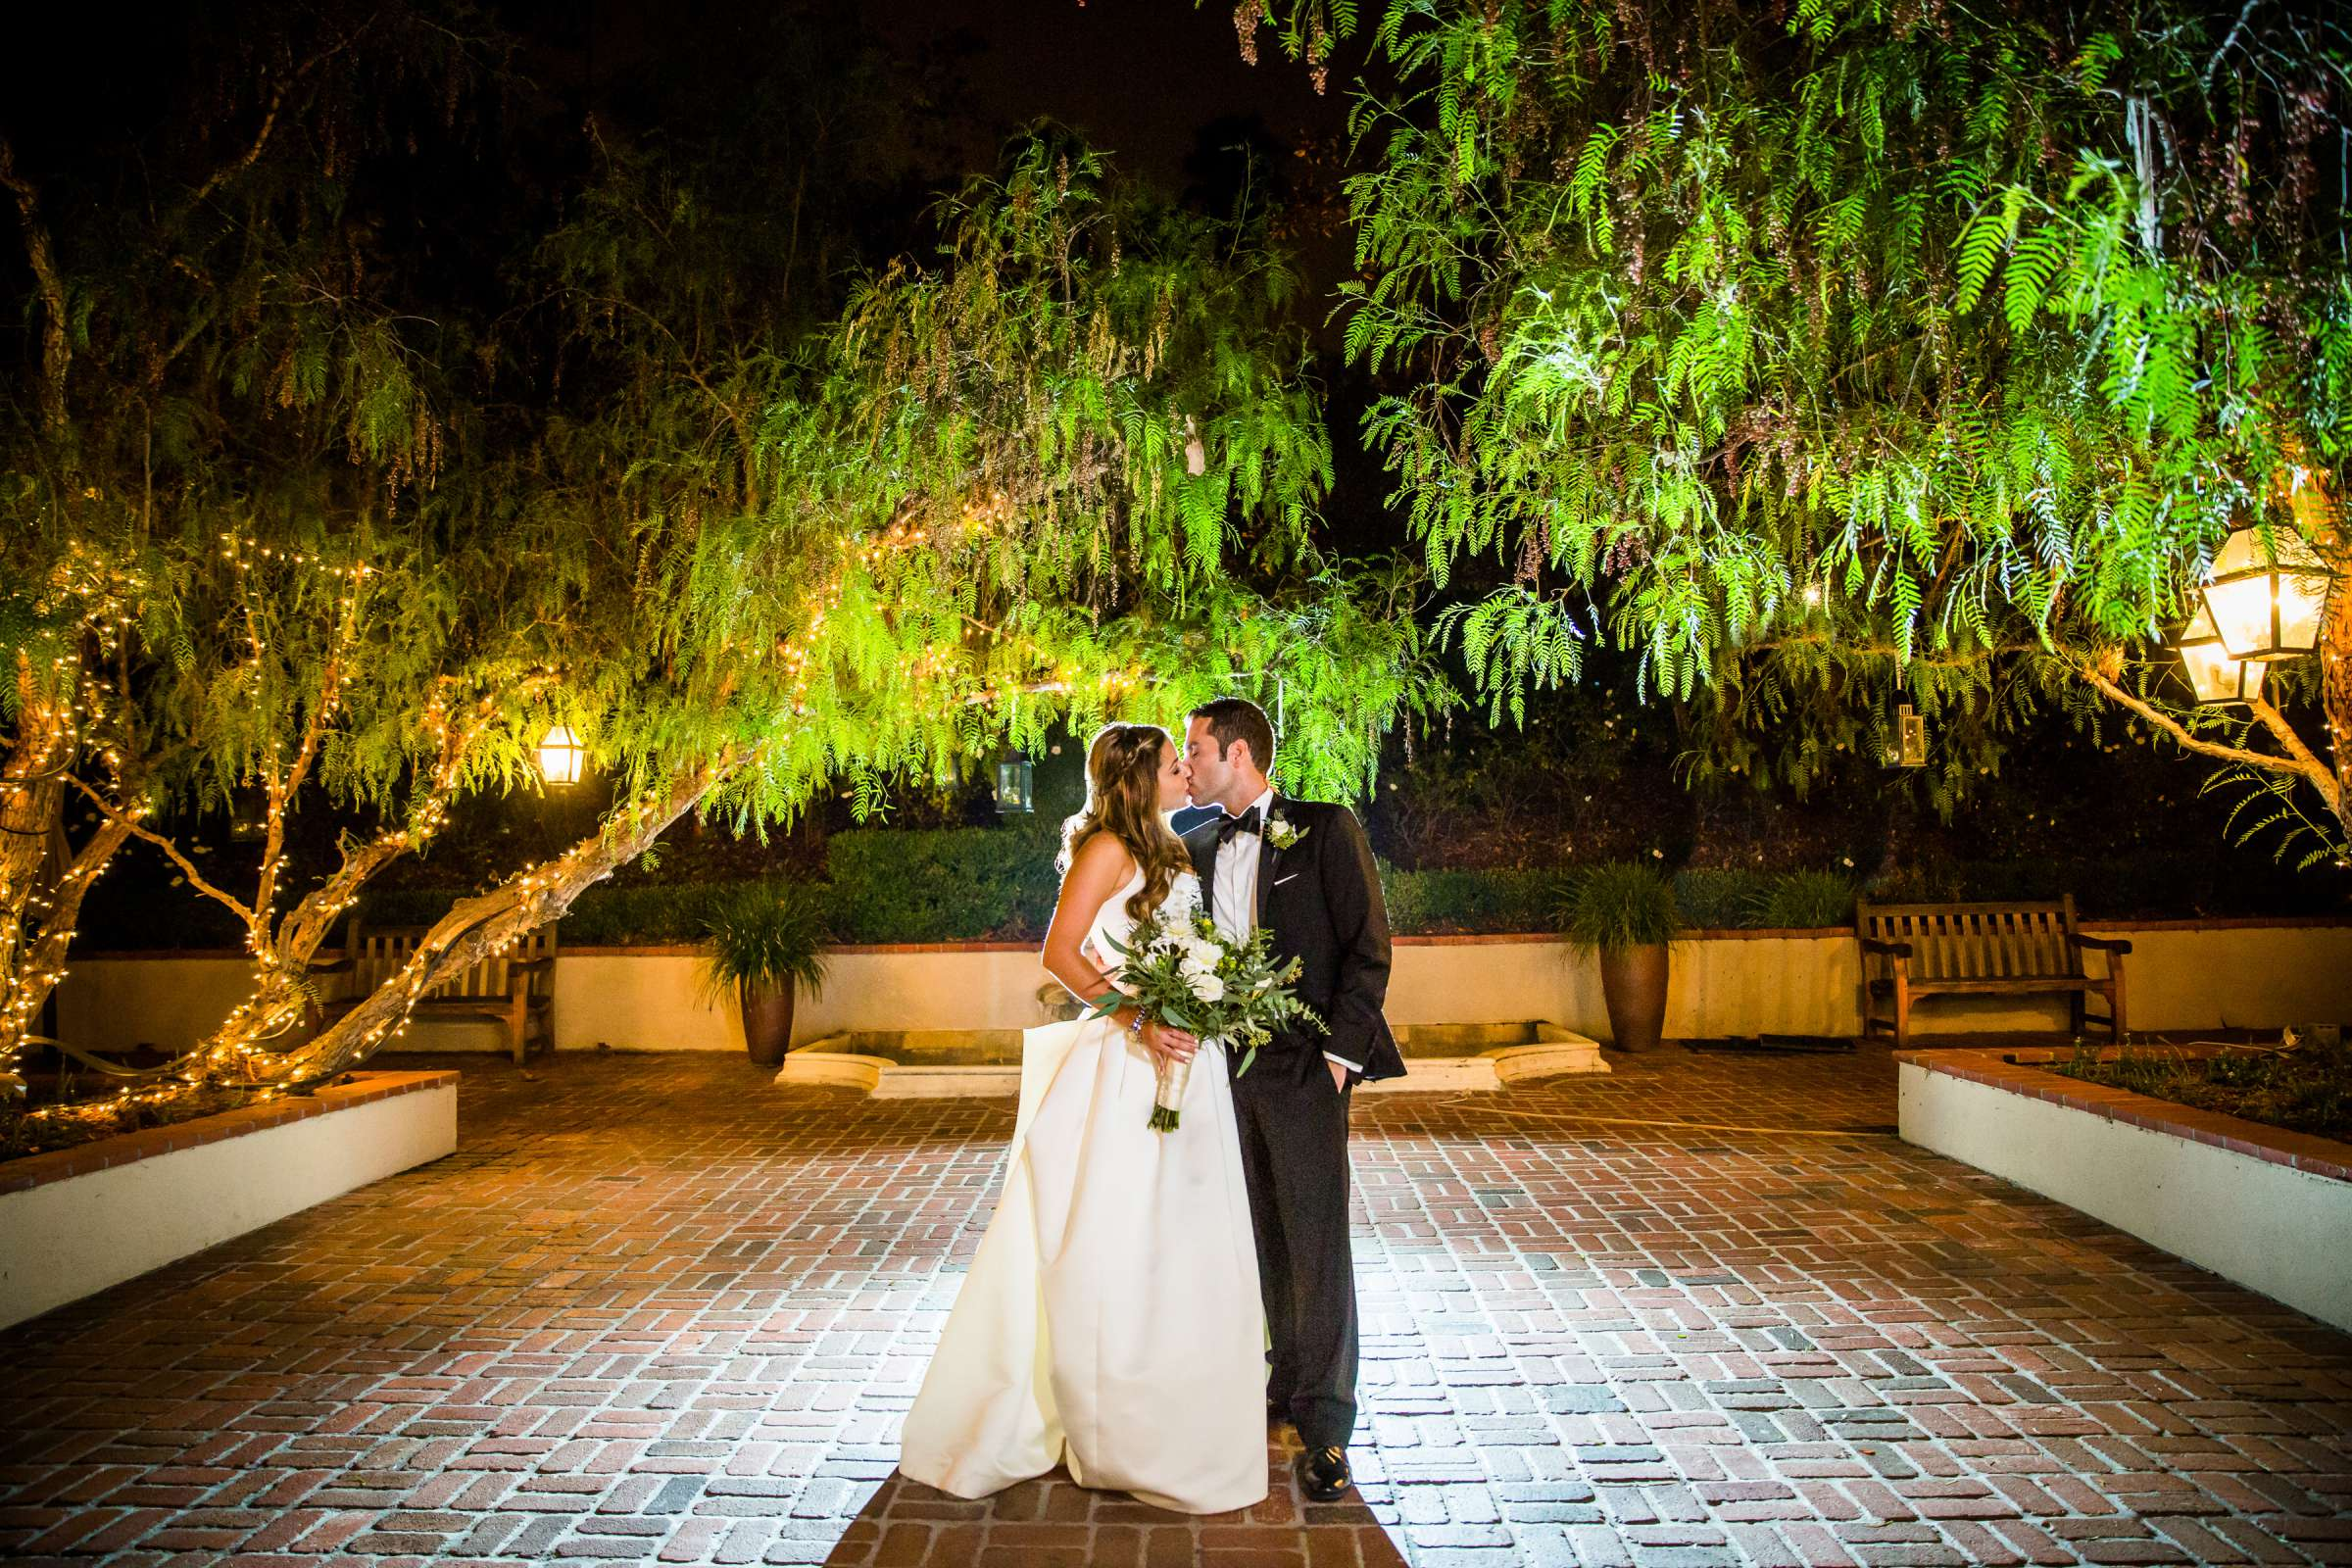 Rancho Bernardo Inn Wedding coordinated by Très Chic Events, Stefania and Nicholas Wedding Photo #1 by True Photography